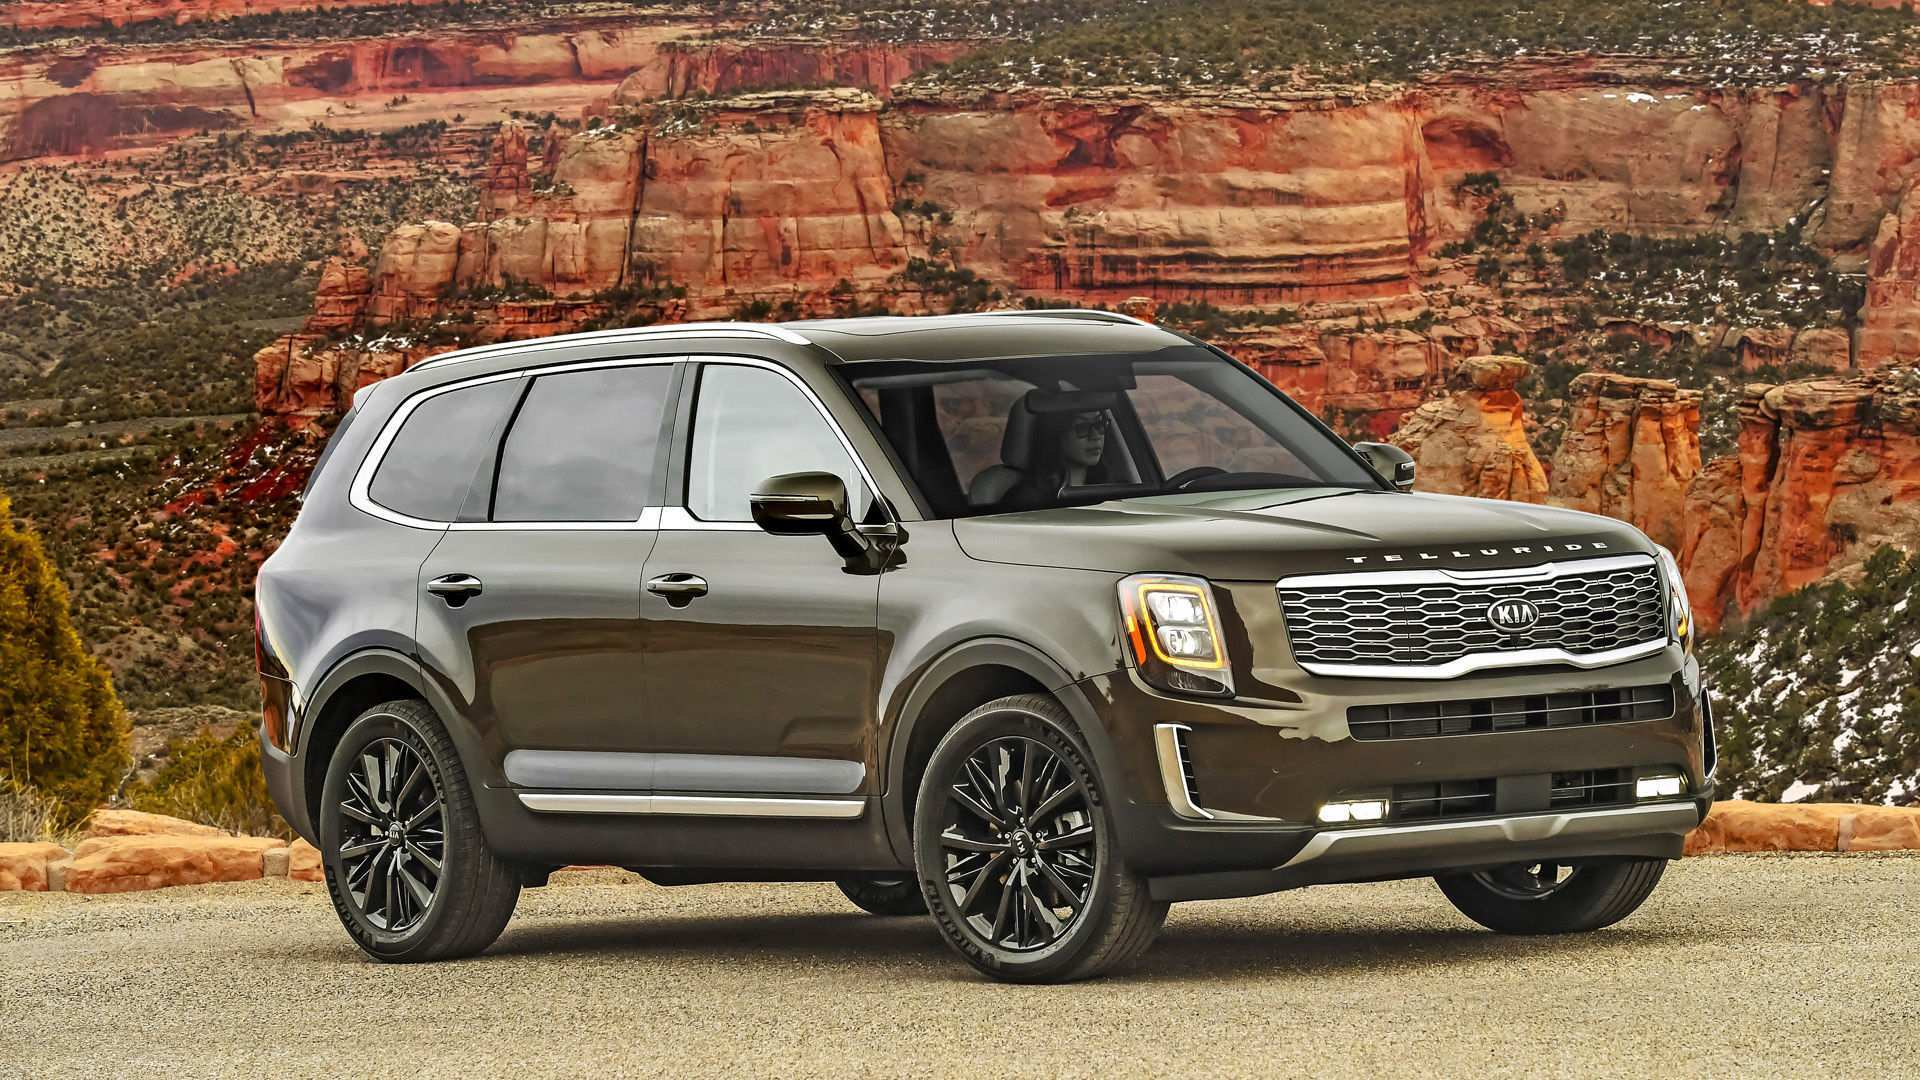 33 All New 2020 Kia Telluride Bolt Pattern Release Date And Concept